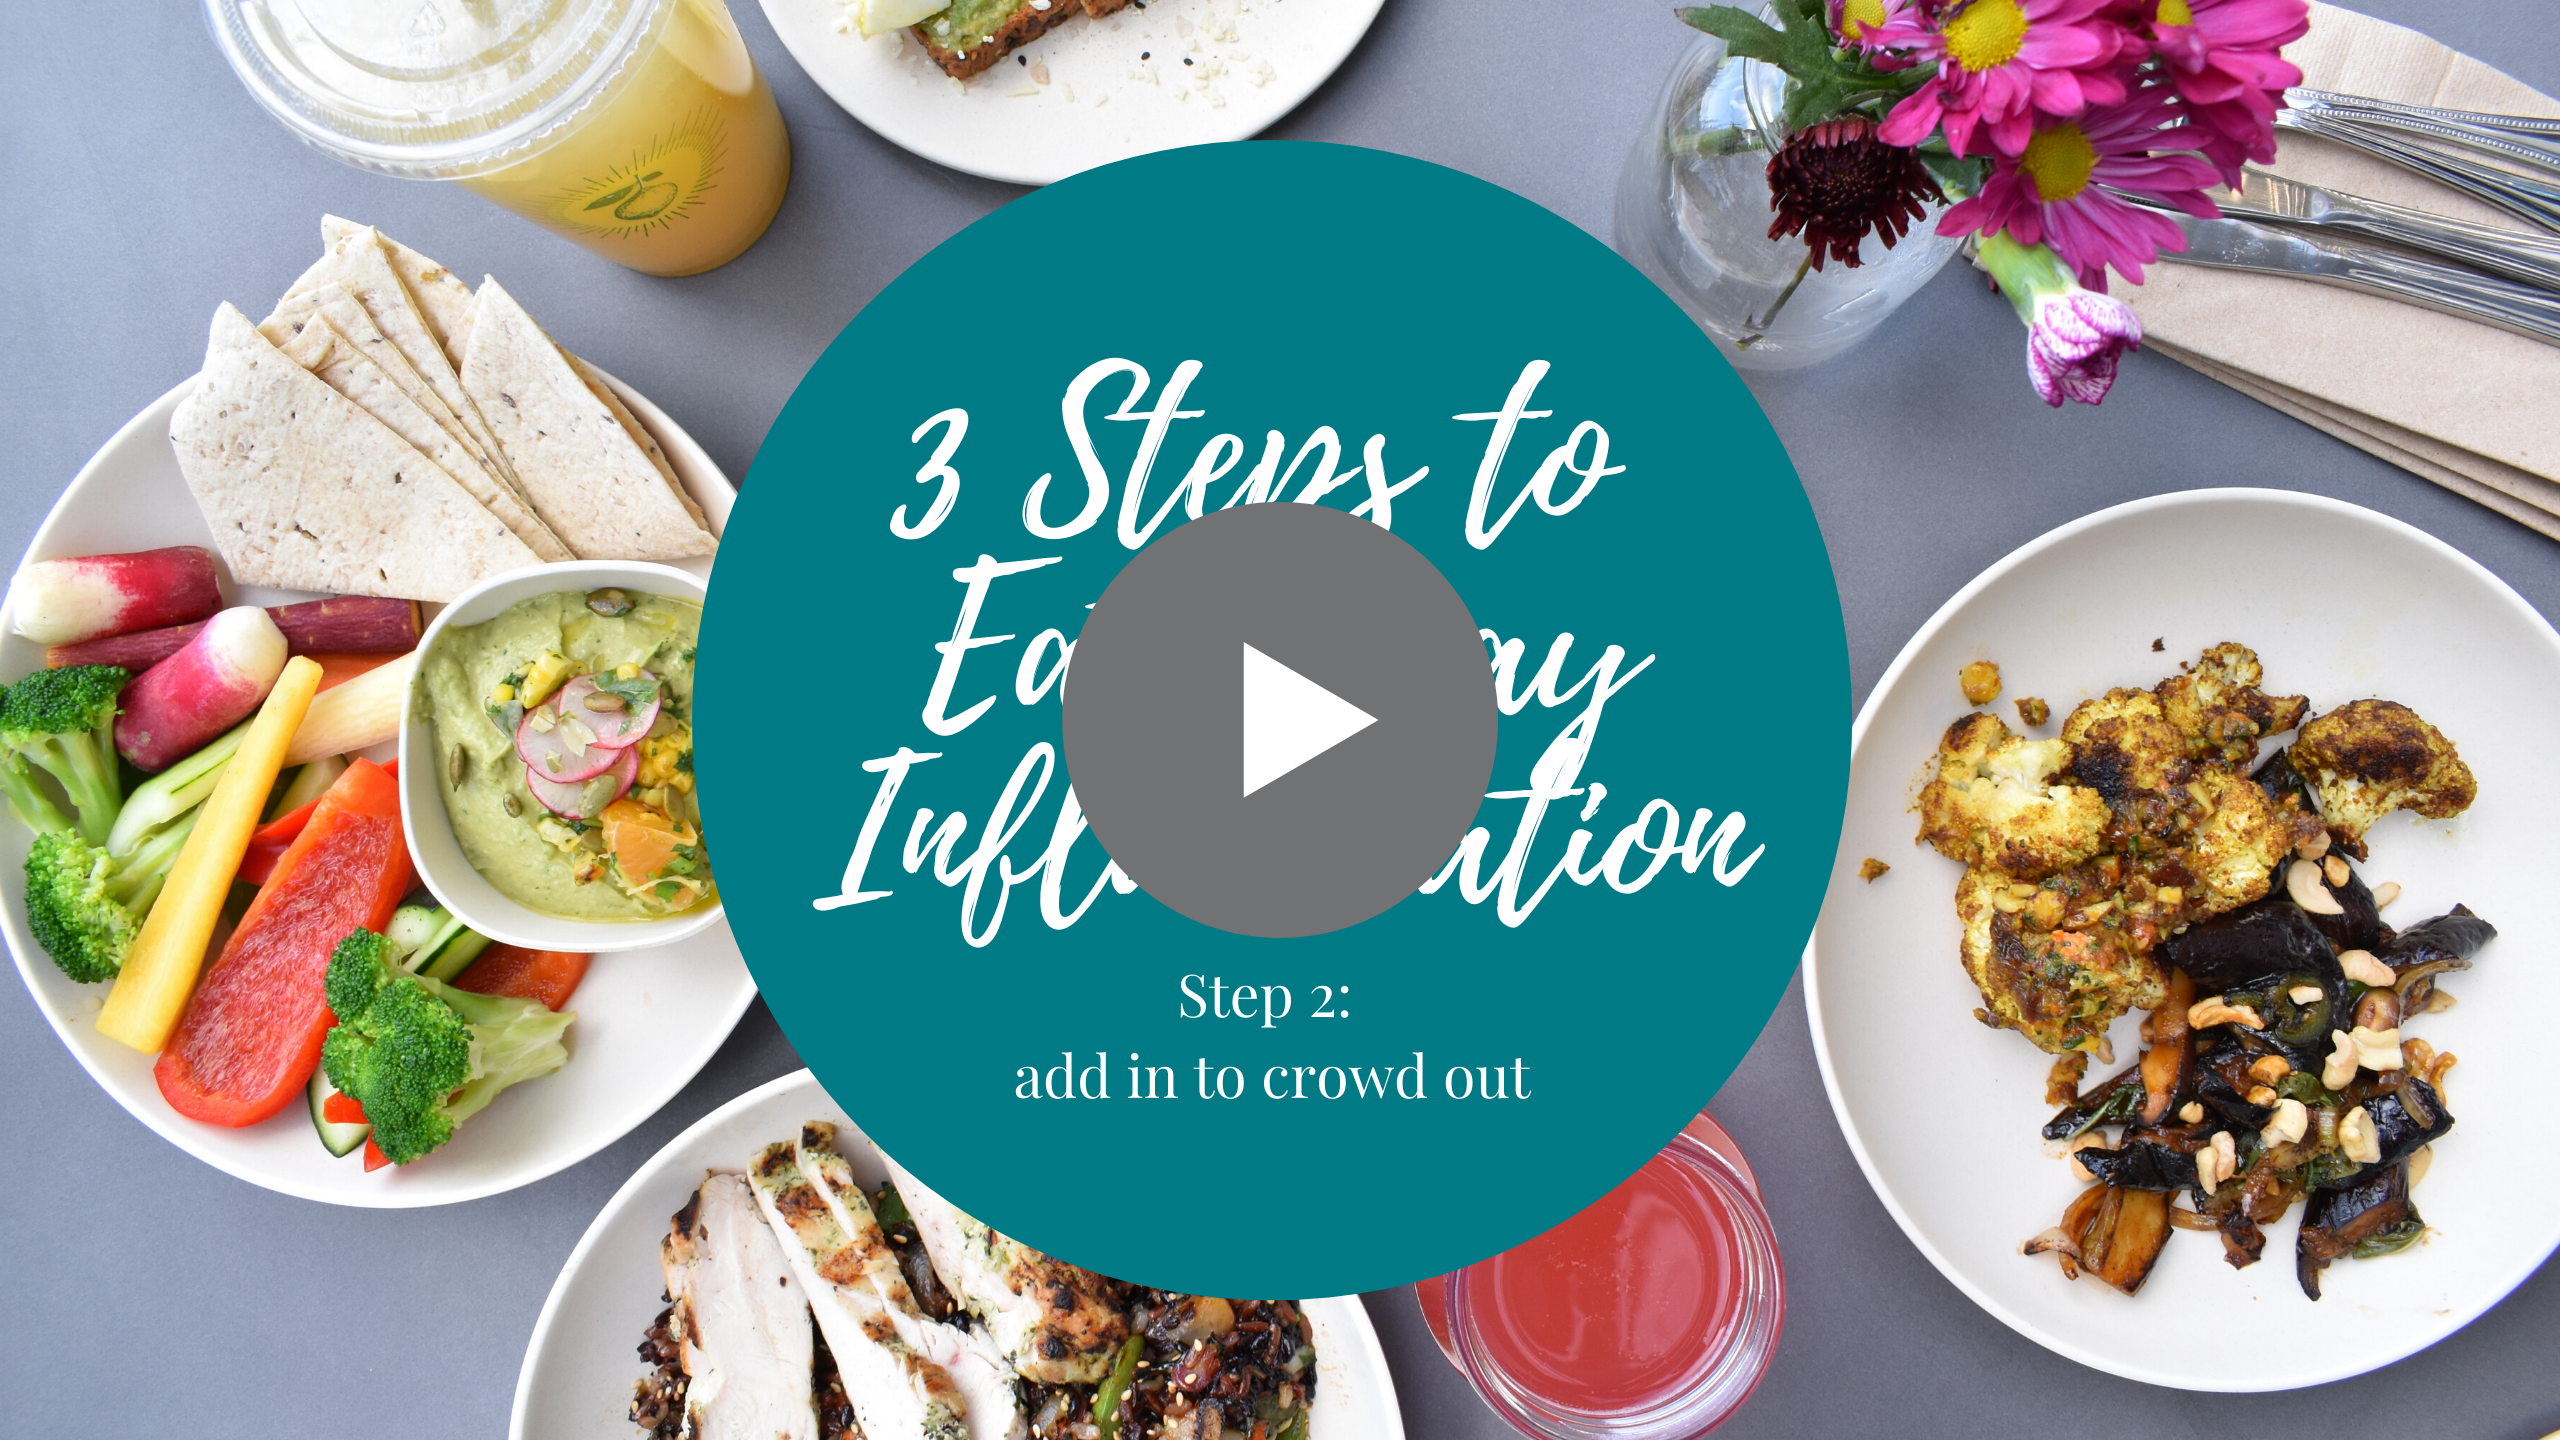 3 steps to eat away inflammation - step 2